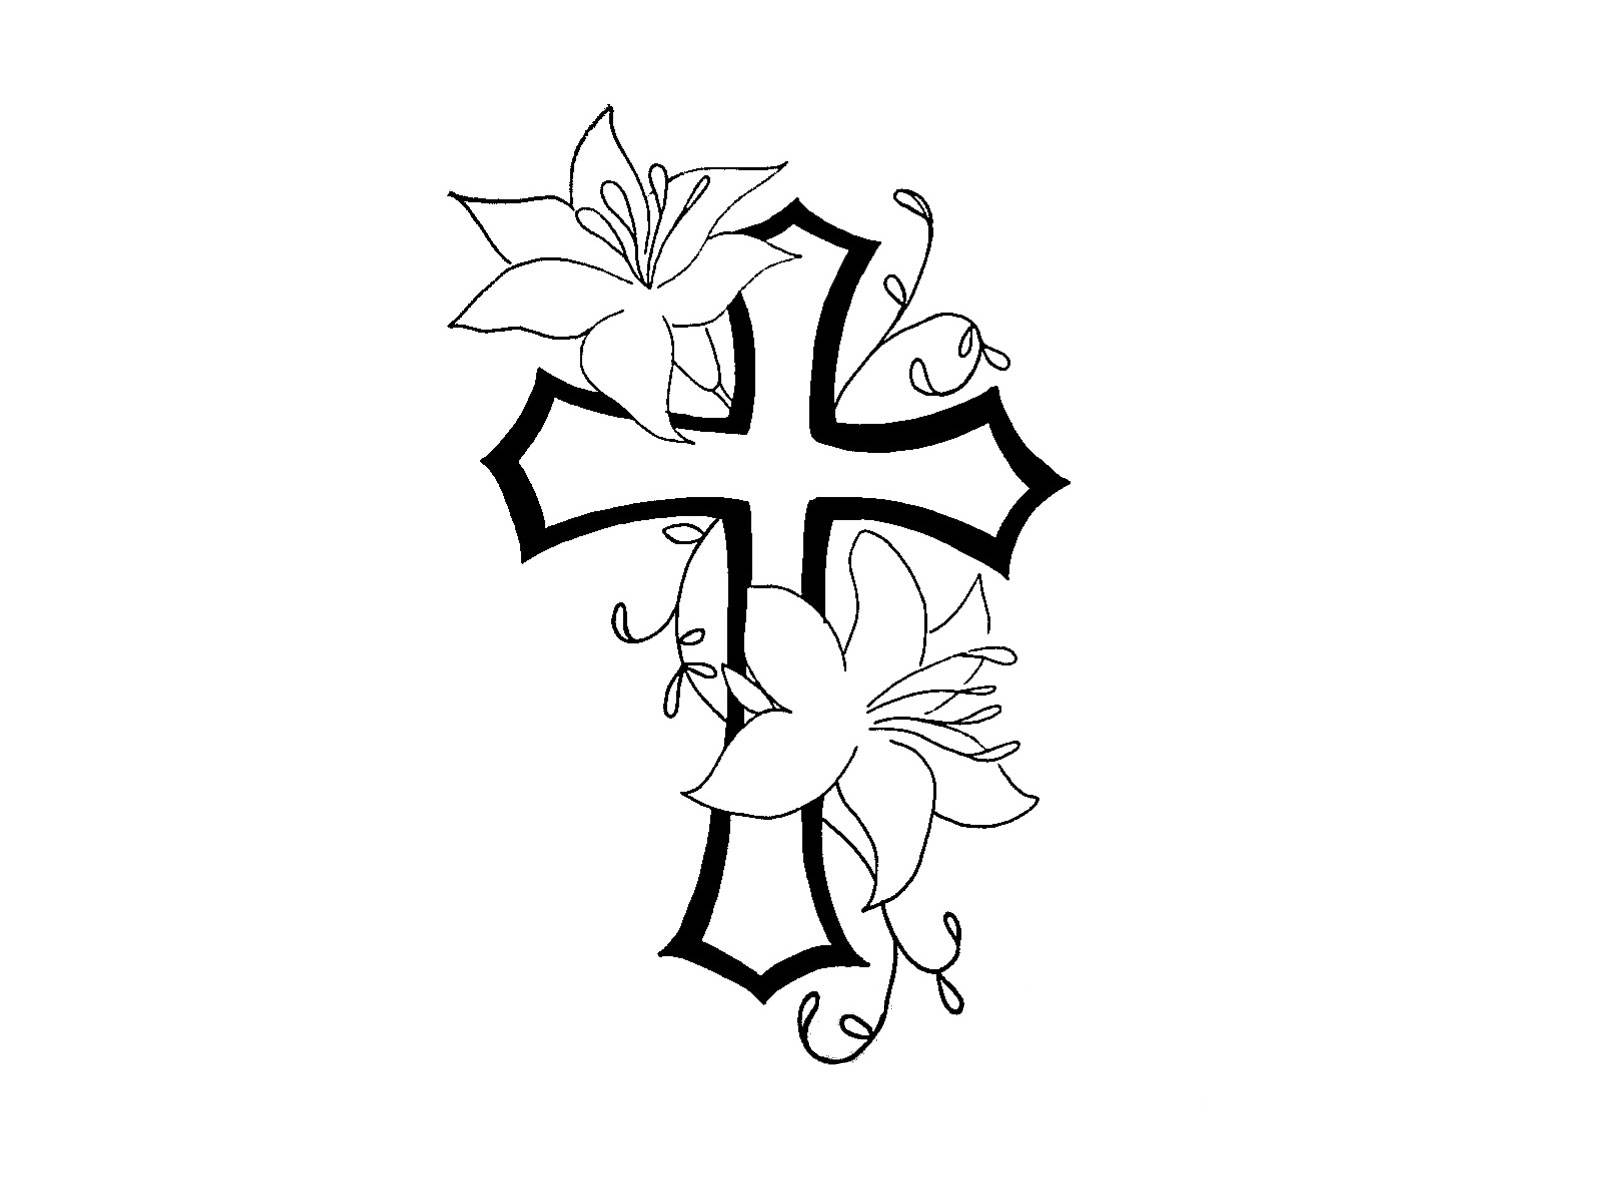 1600x1200 Drawn Vine Crosses